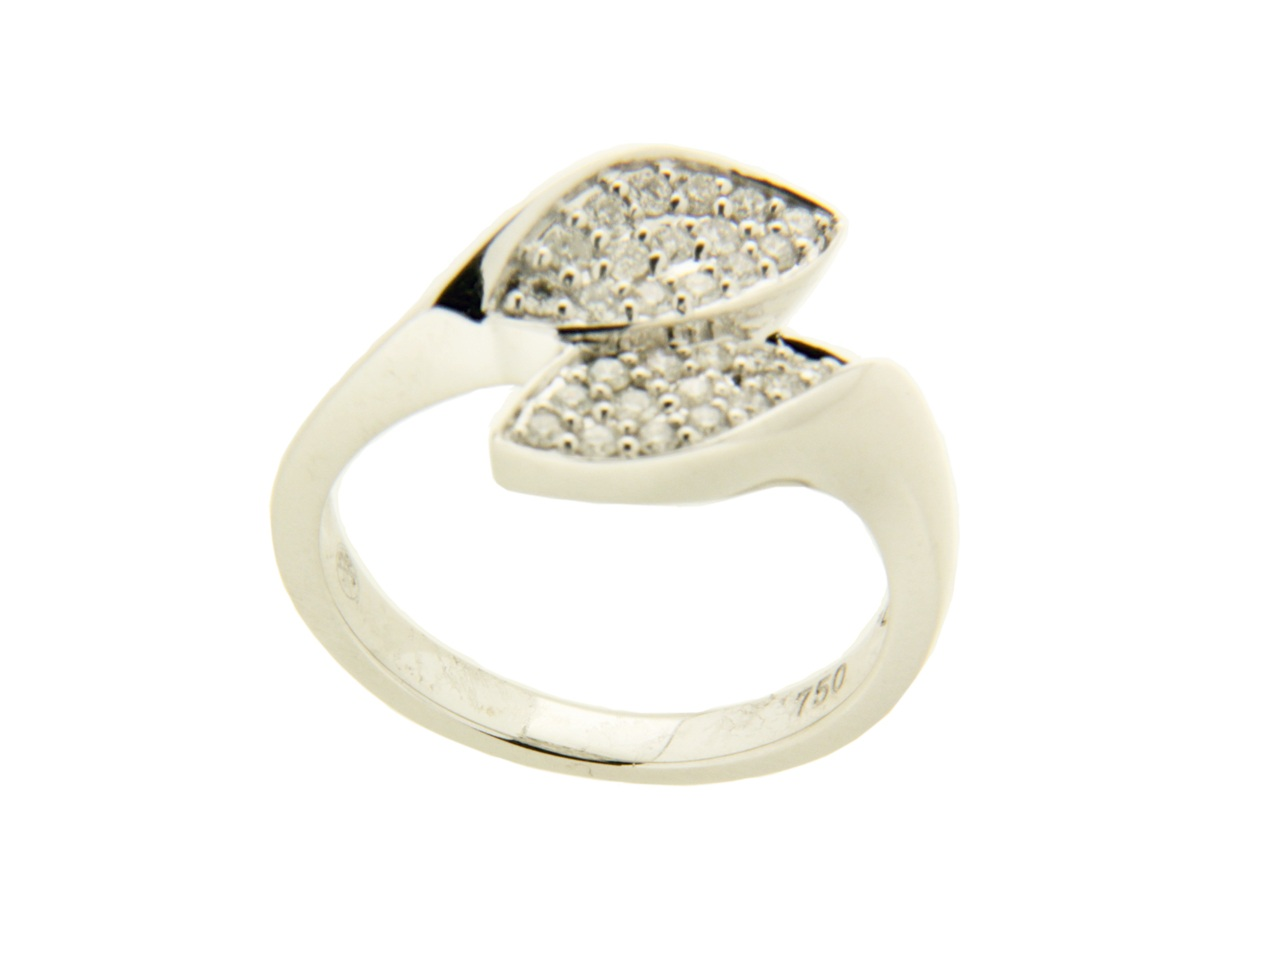 Bague double losanges, Or gris, diamants 0,35 ct